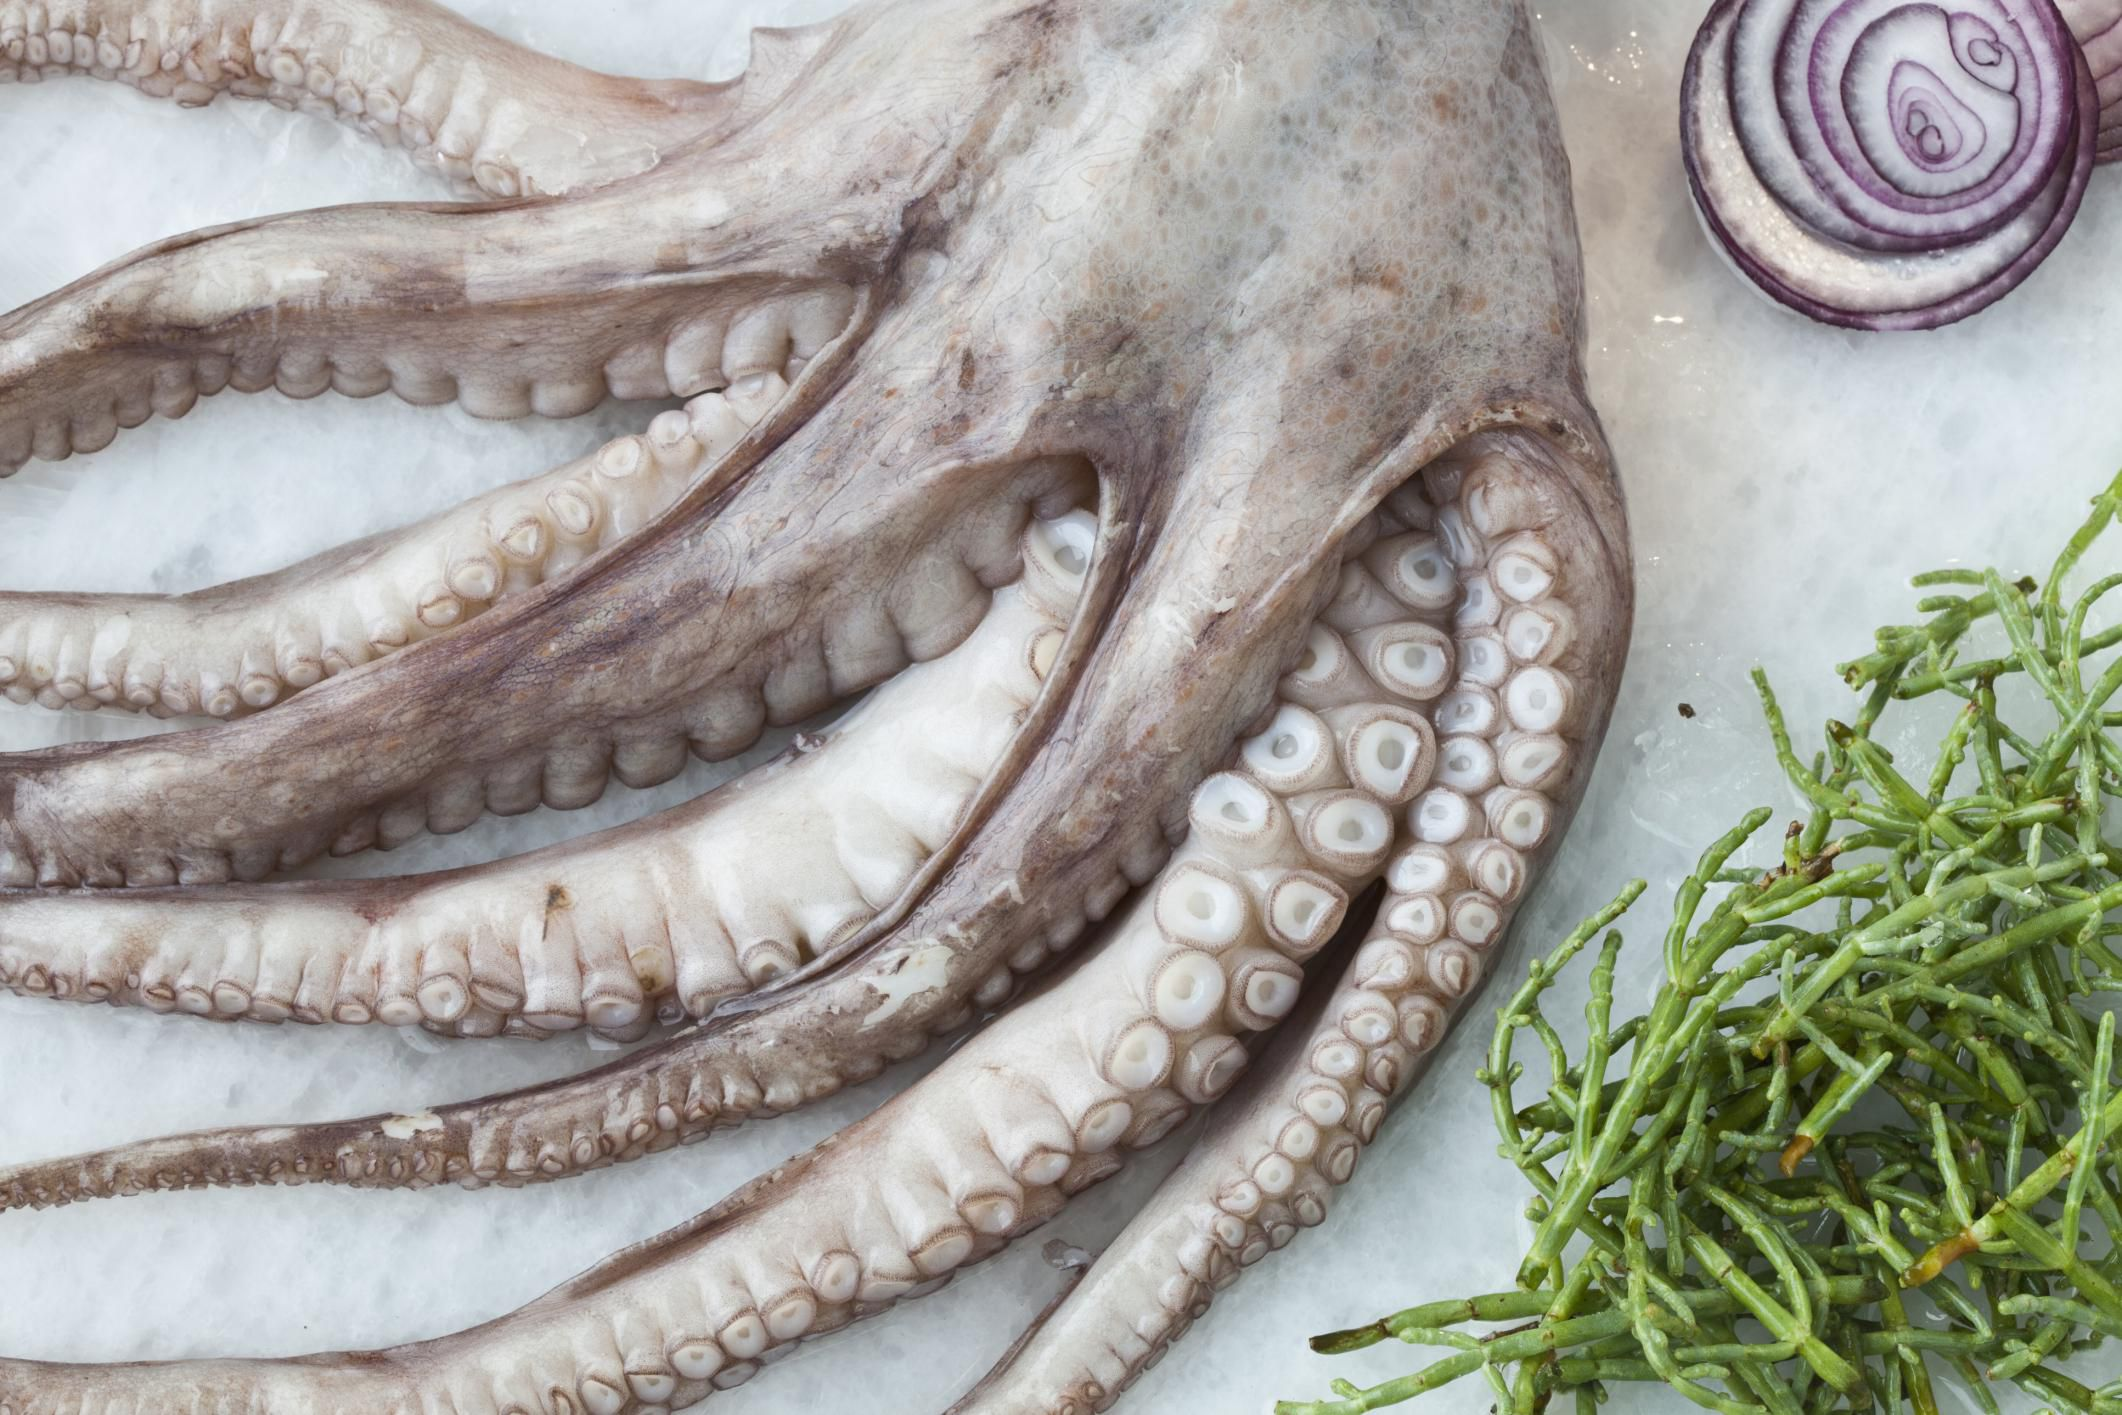 How To Prepare Octopus For Cooking Later